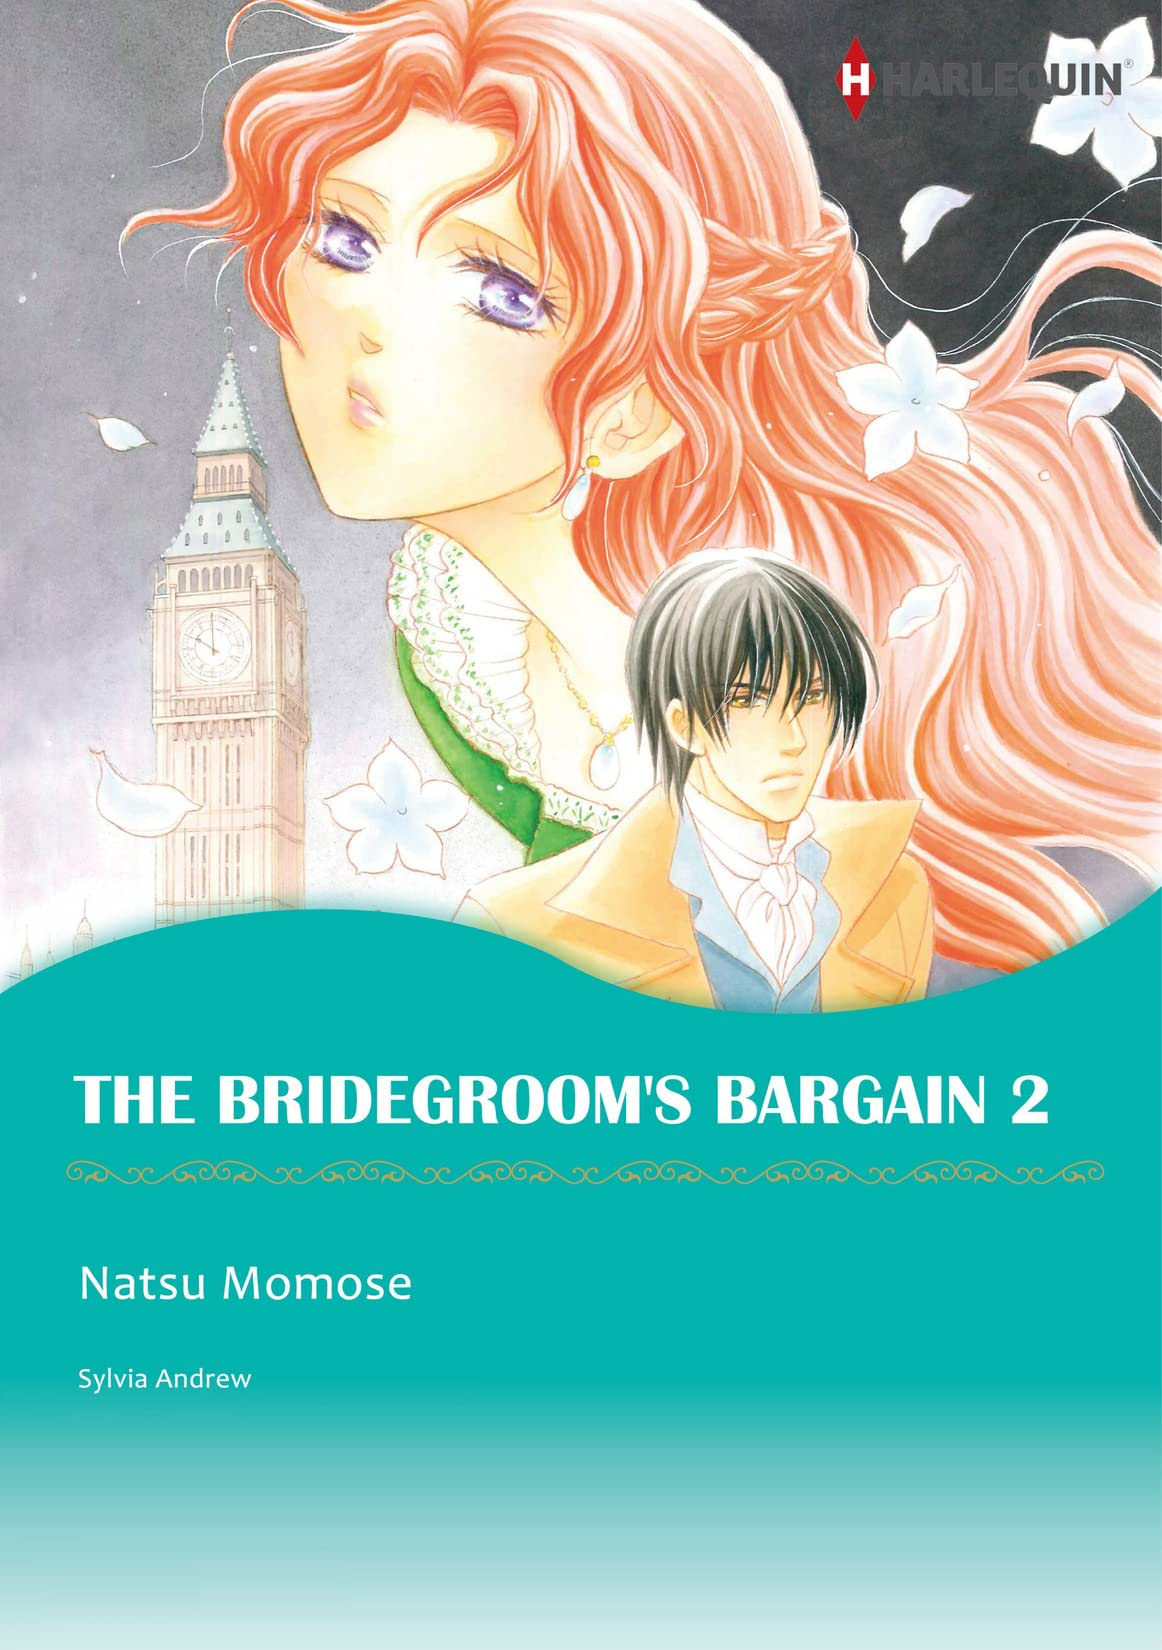 The Bridegroom's Bargain Vol. 2